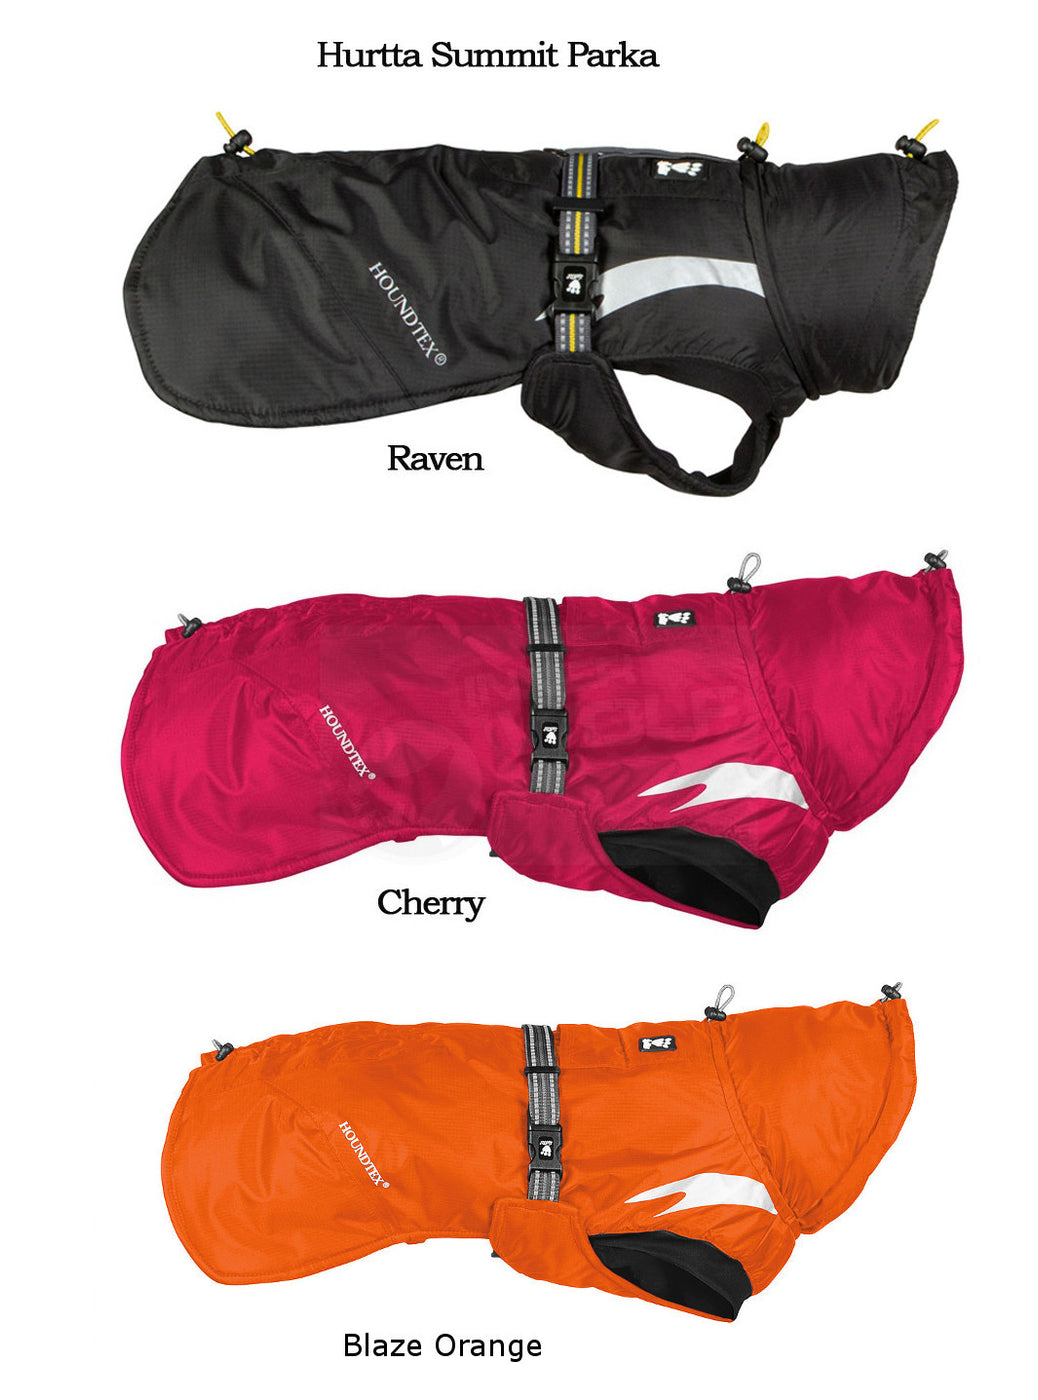 hurtta summit parka raven cherry blaze orange colors